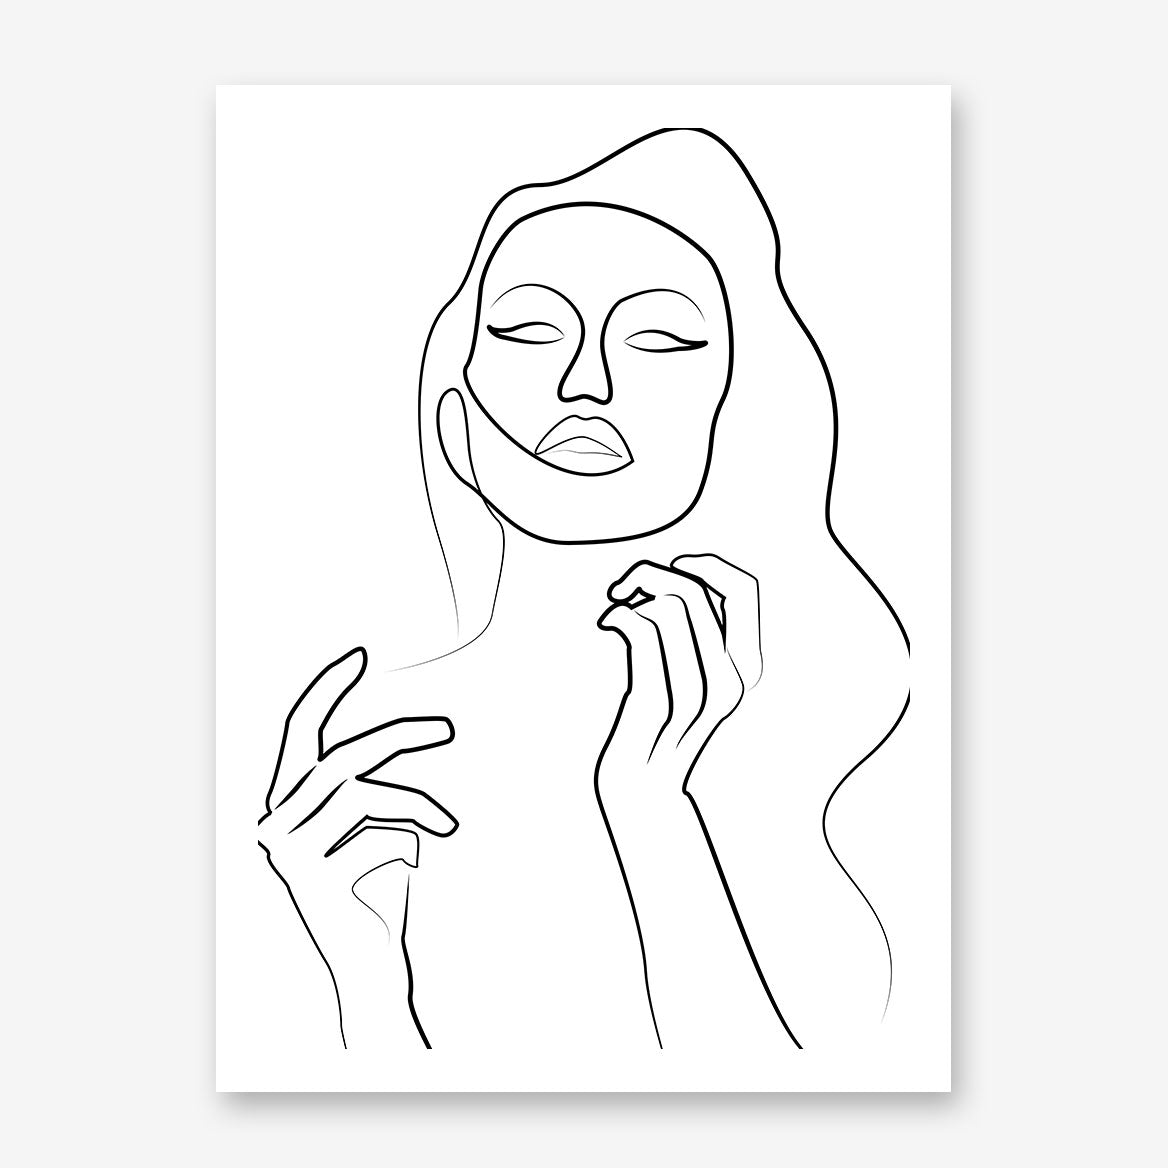 Line art poster print with sensual woman with long wavy hair.